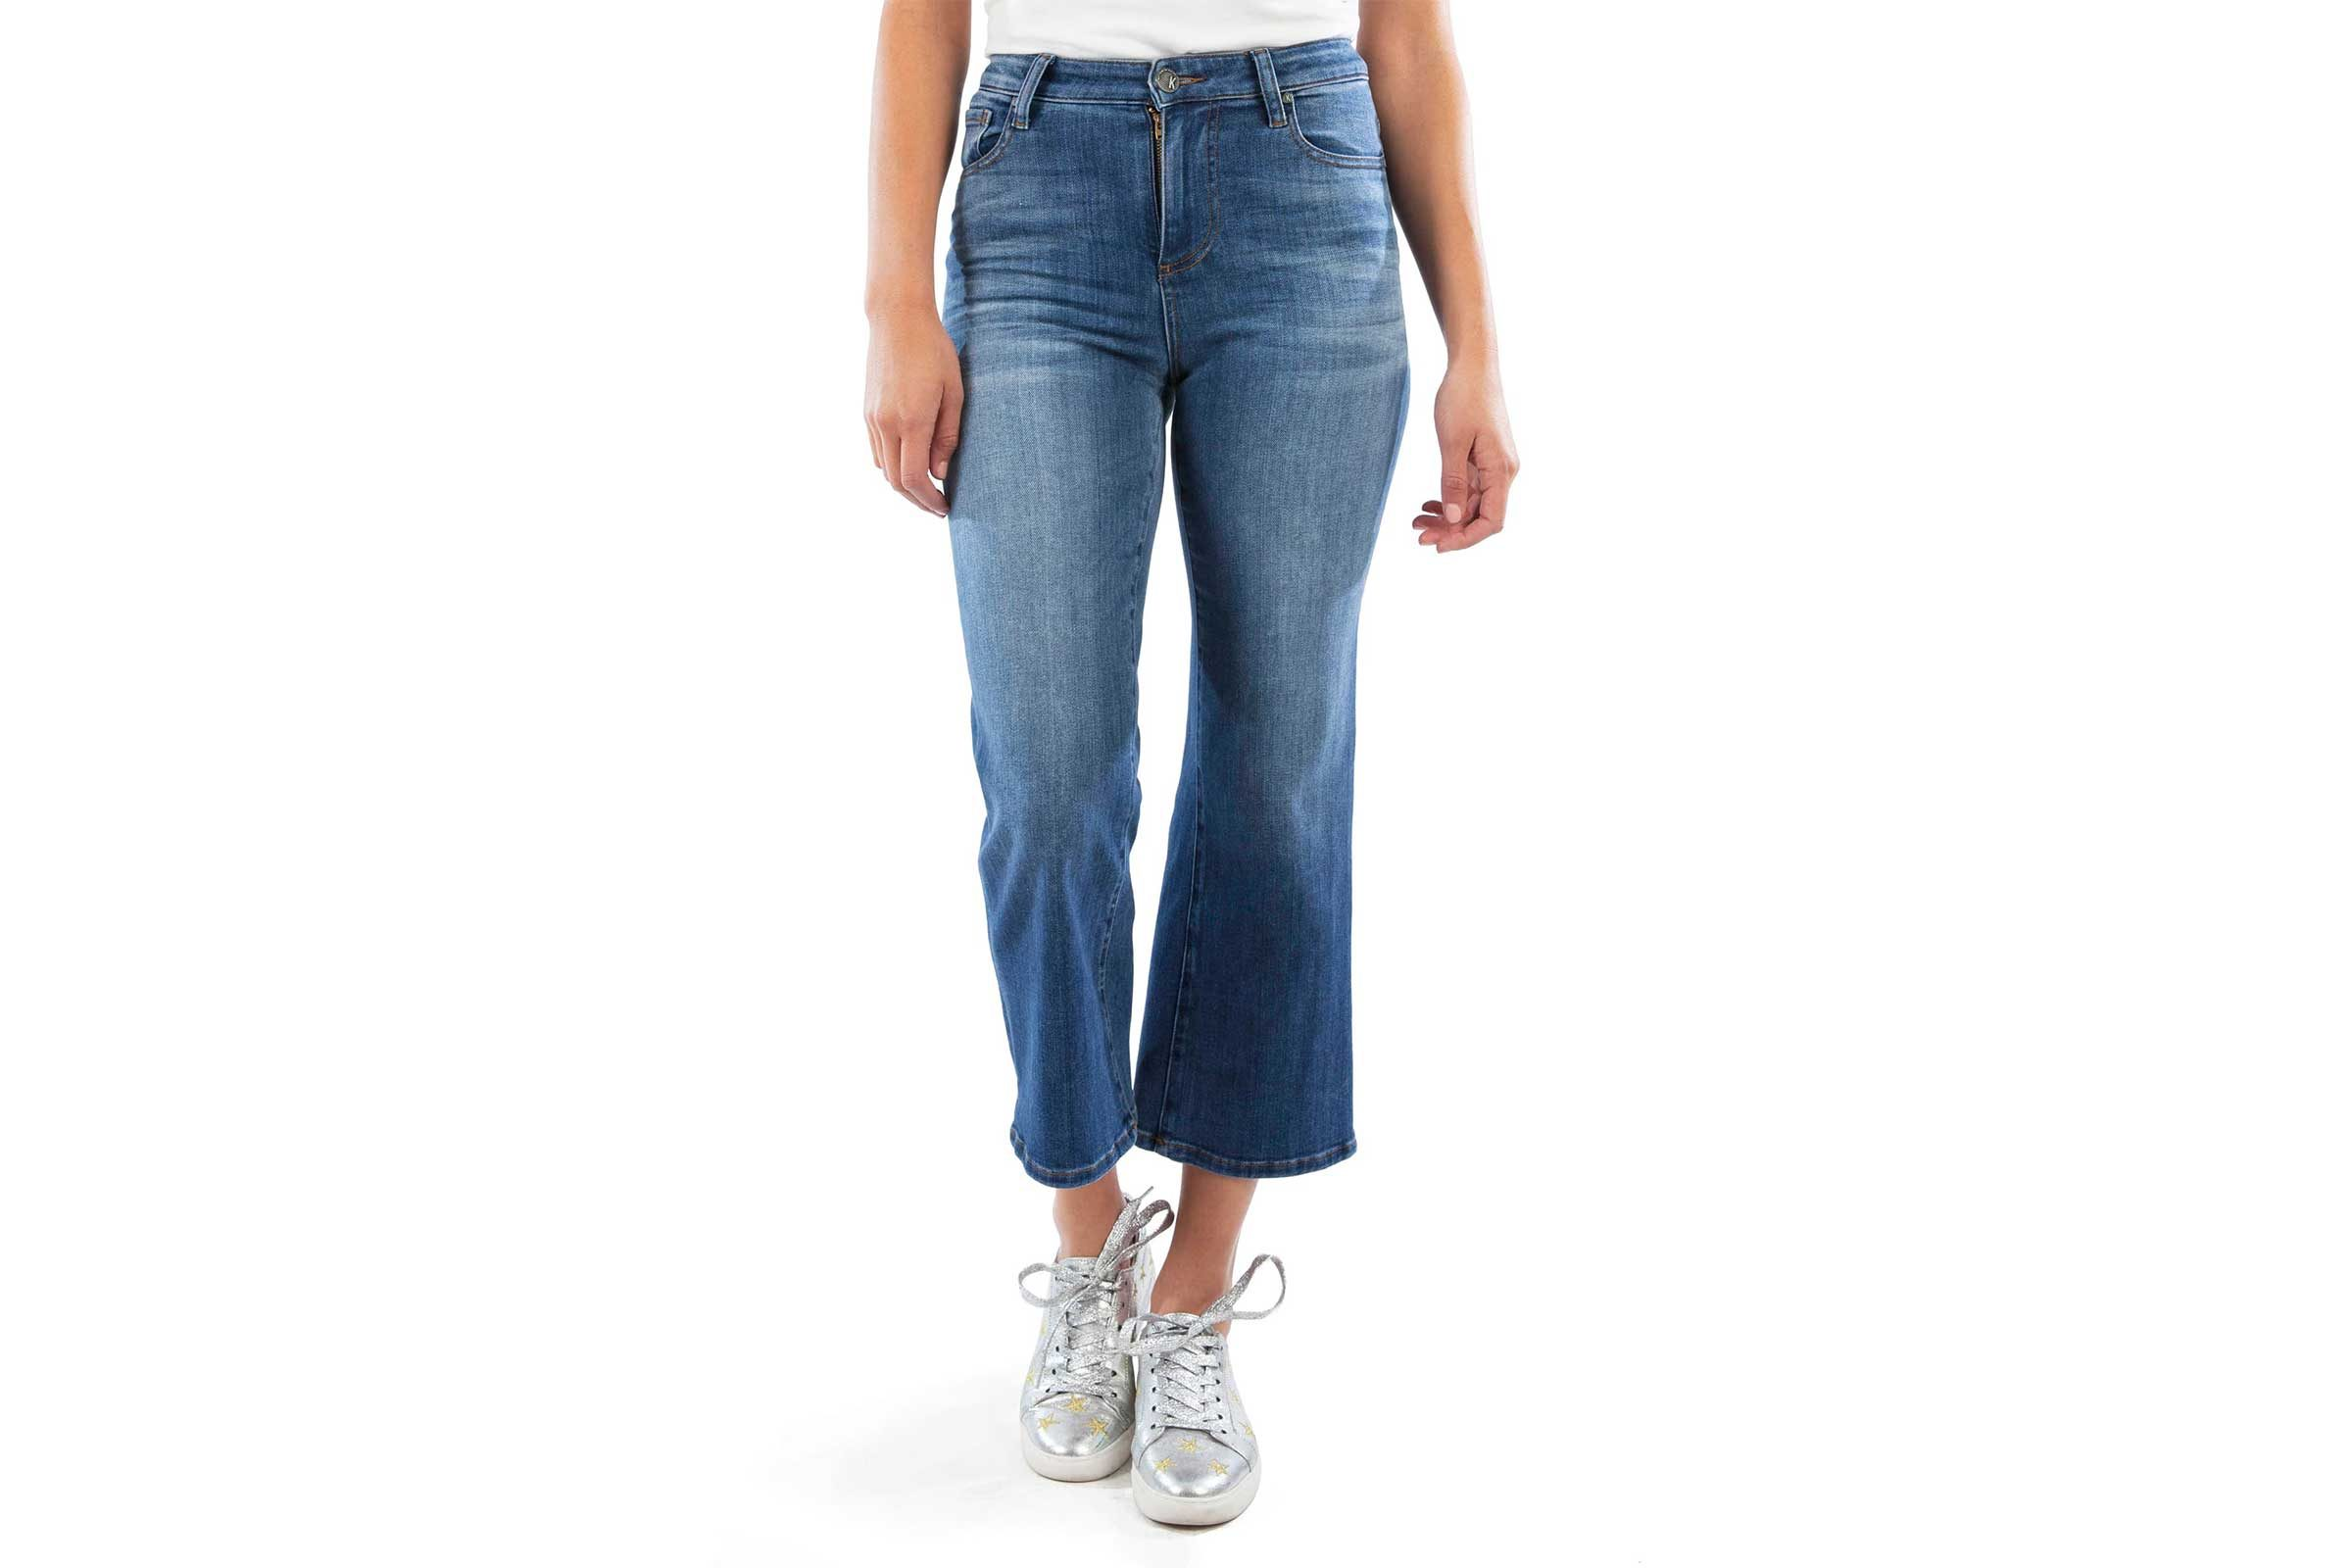 01_On-trend-denim-is-your-new-best-friend